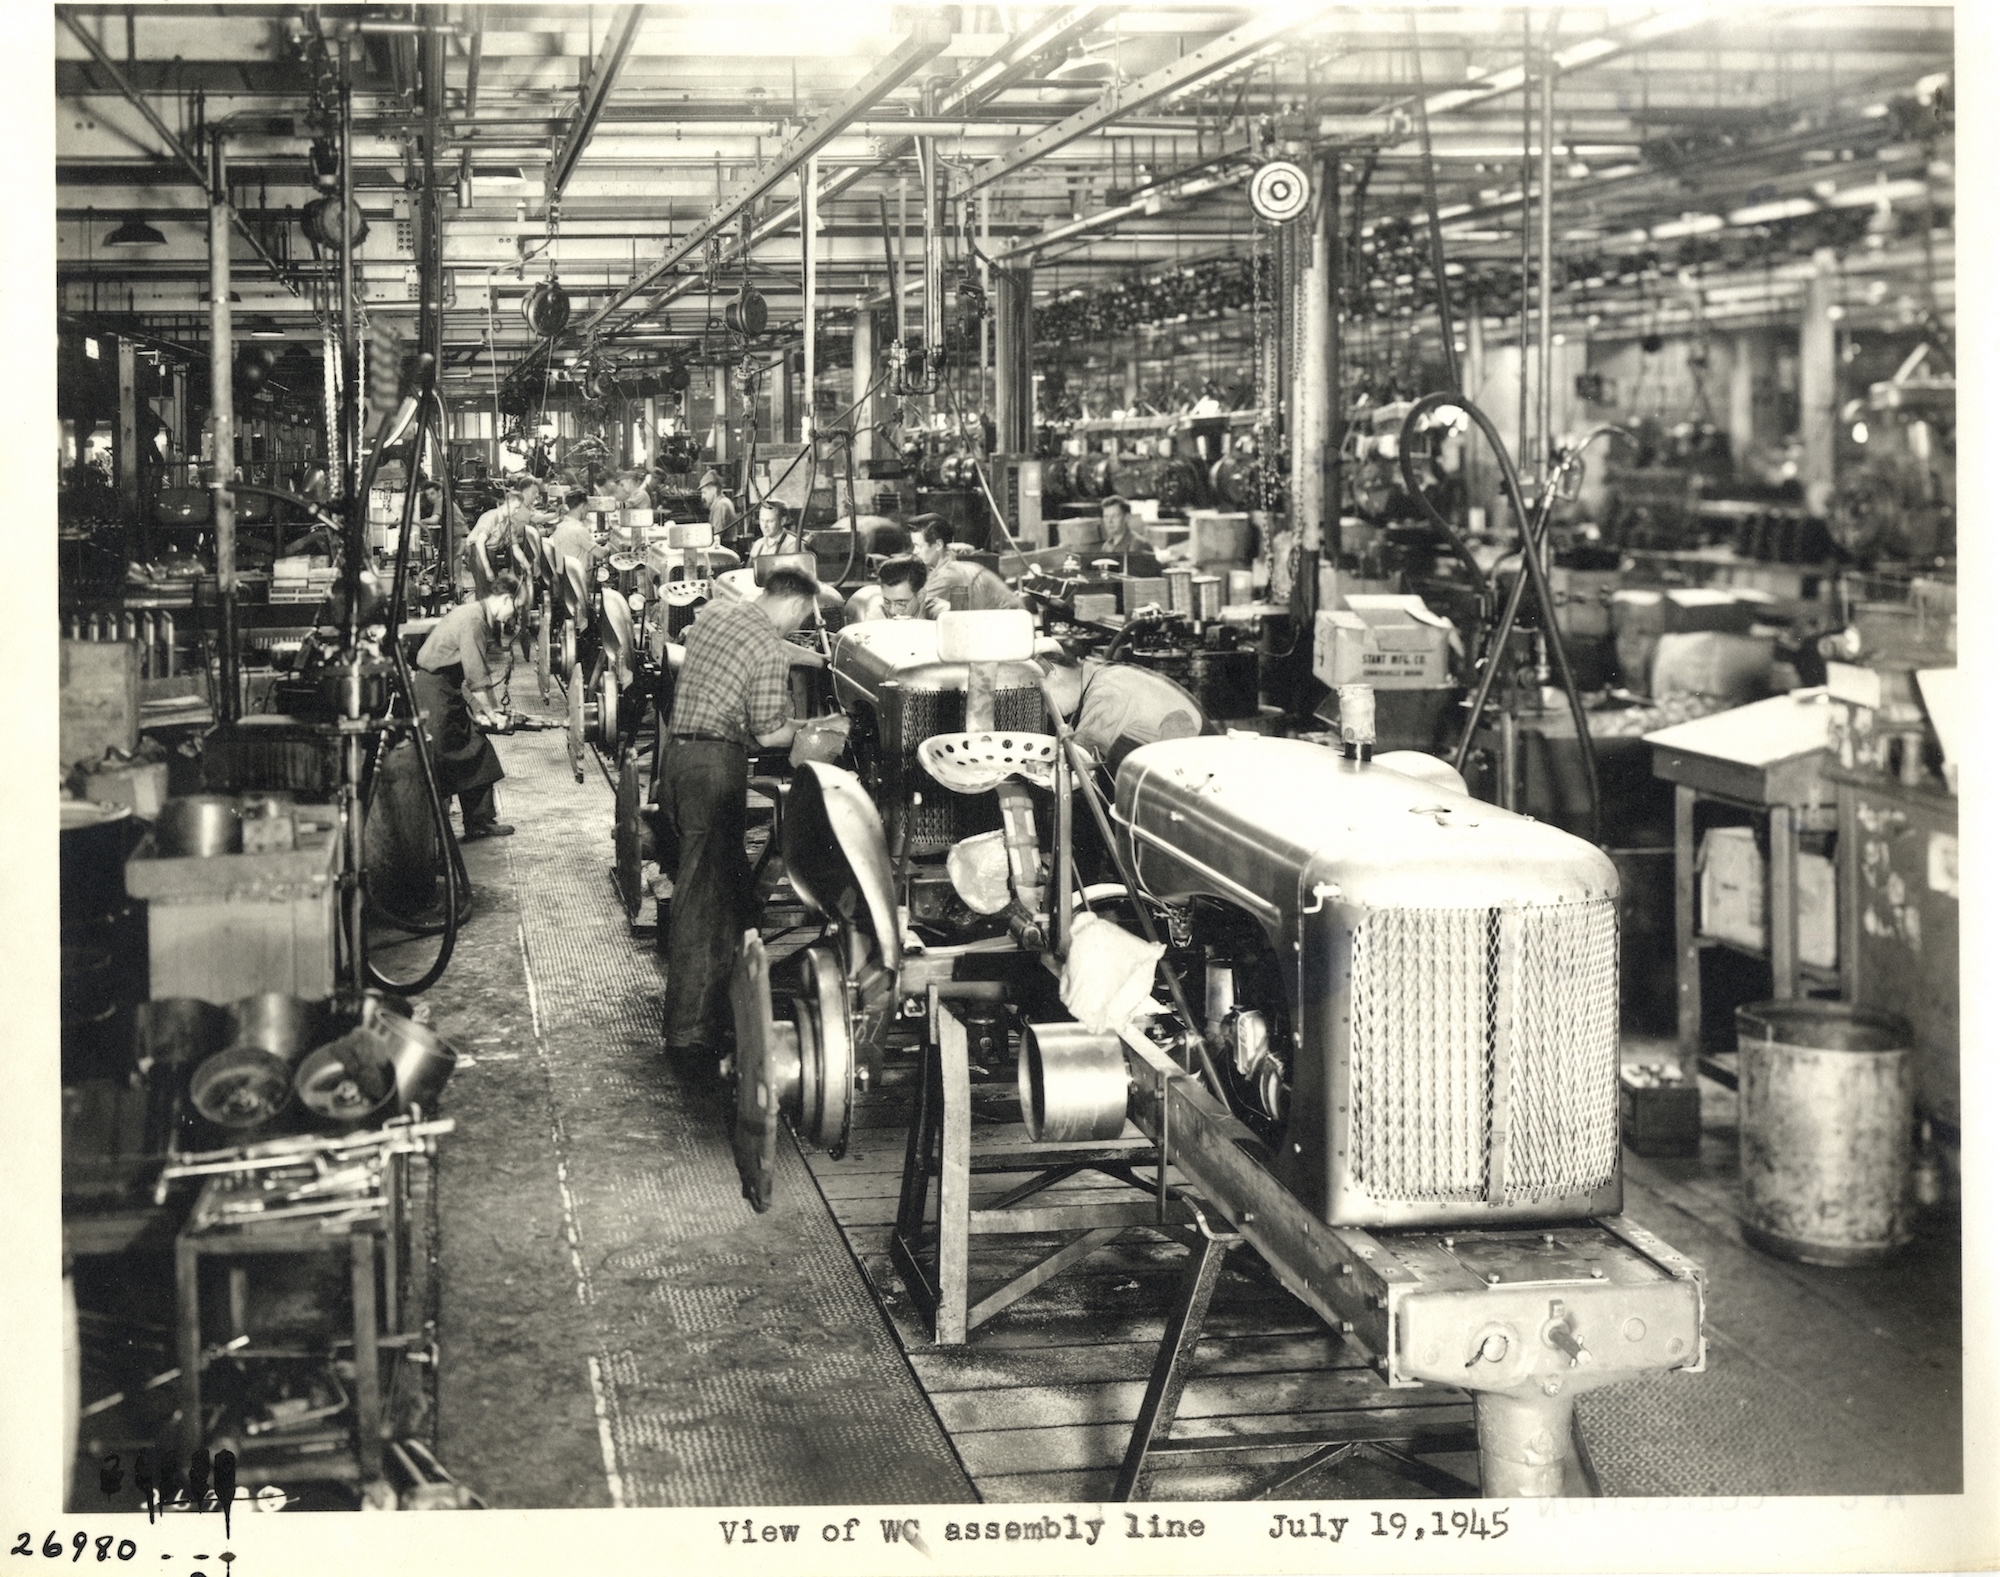 1945 photograph of Allis-Chalmers employees assembling WC model tractors in West Allis, highlighting the importance of both heavy manufacturing and agriculture in the Milwaukee area.